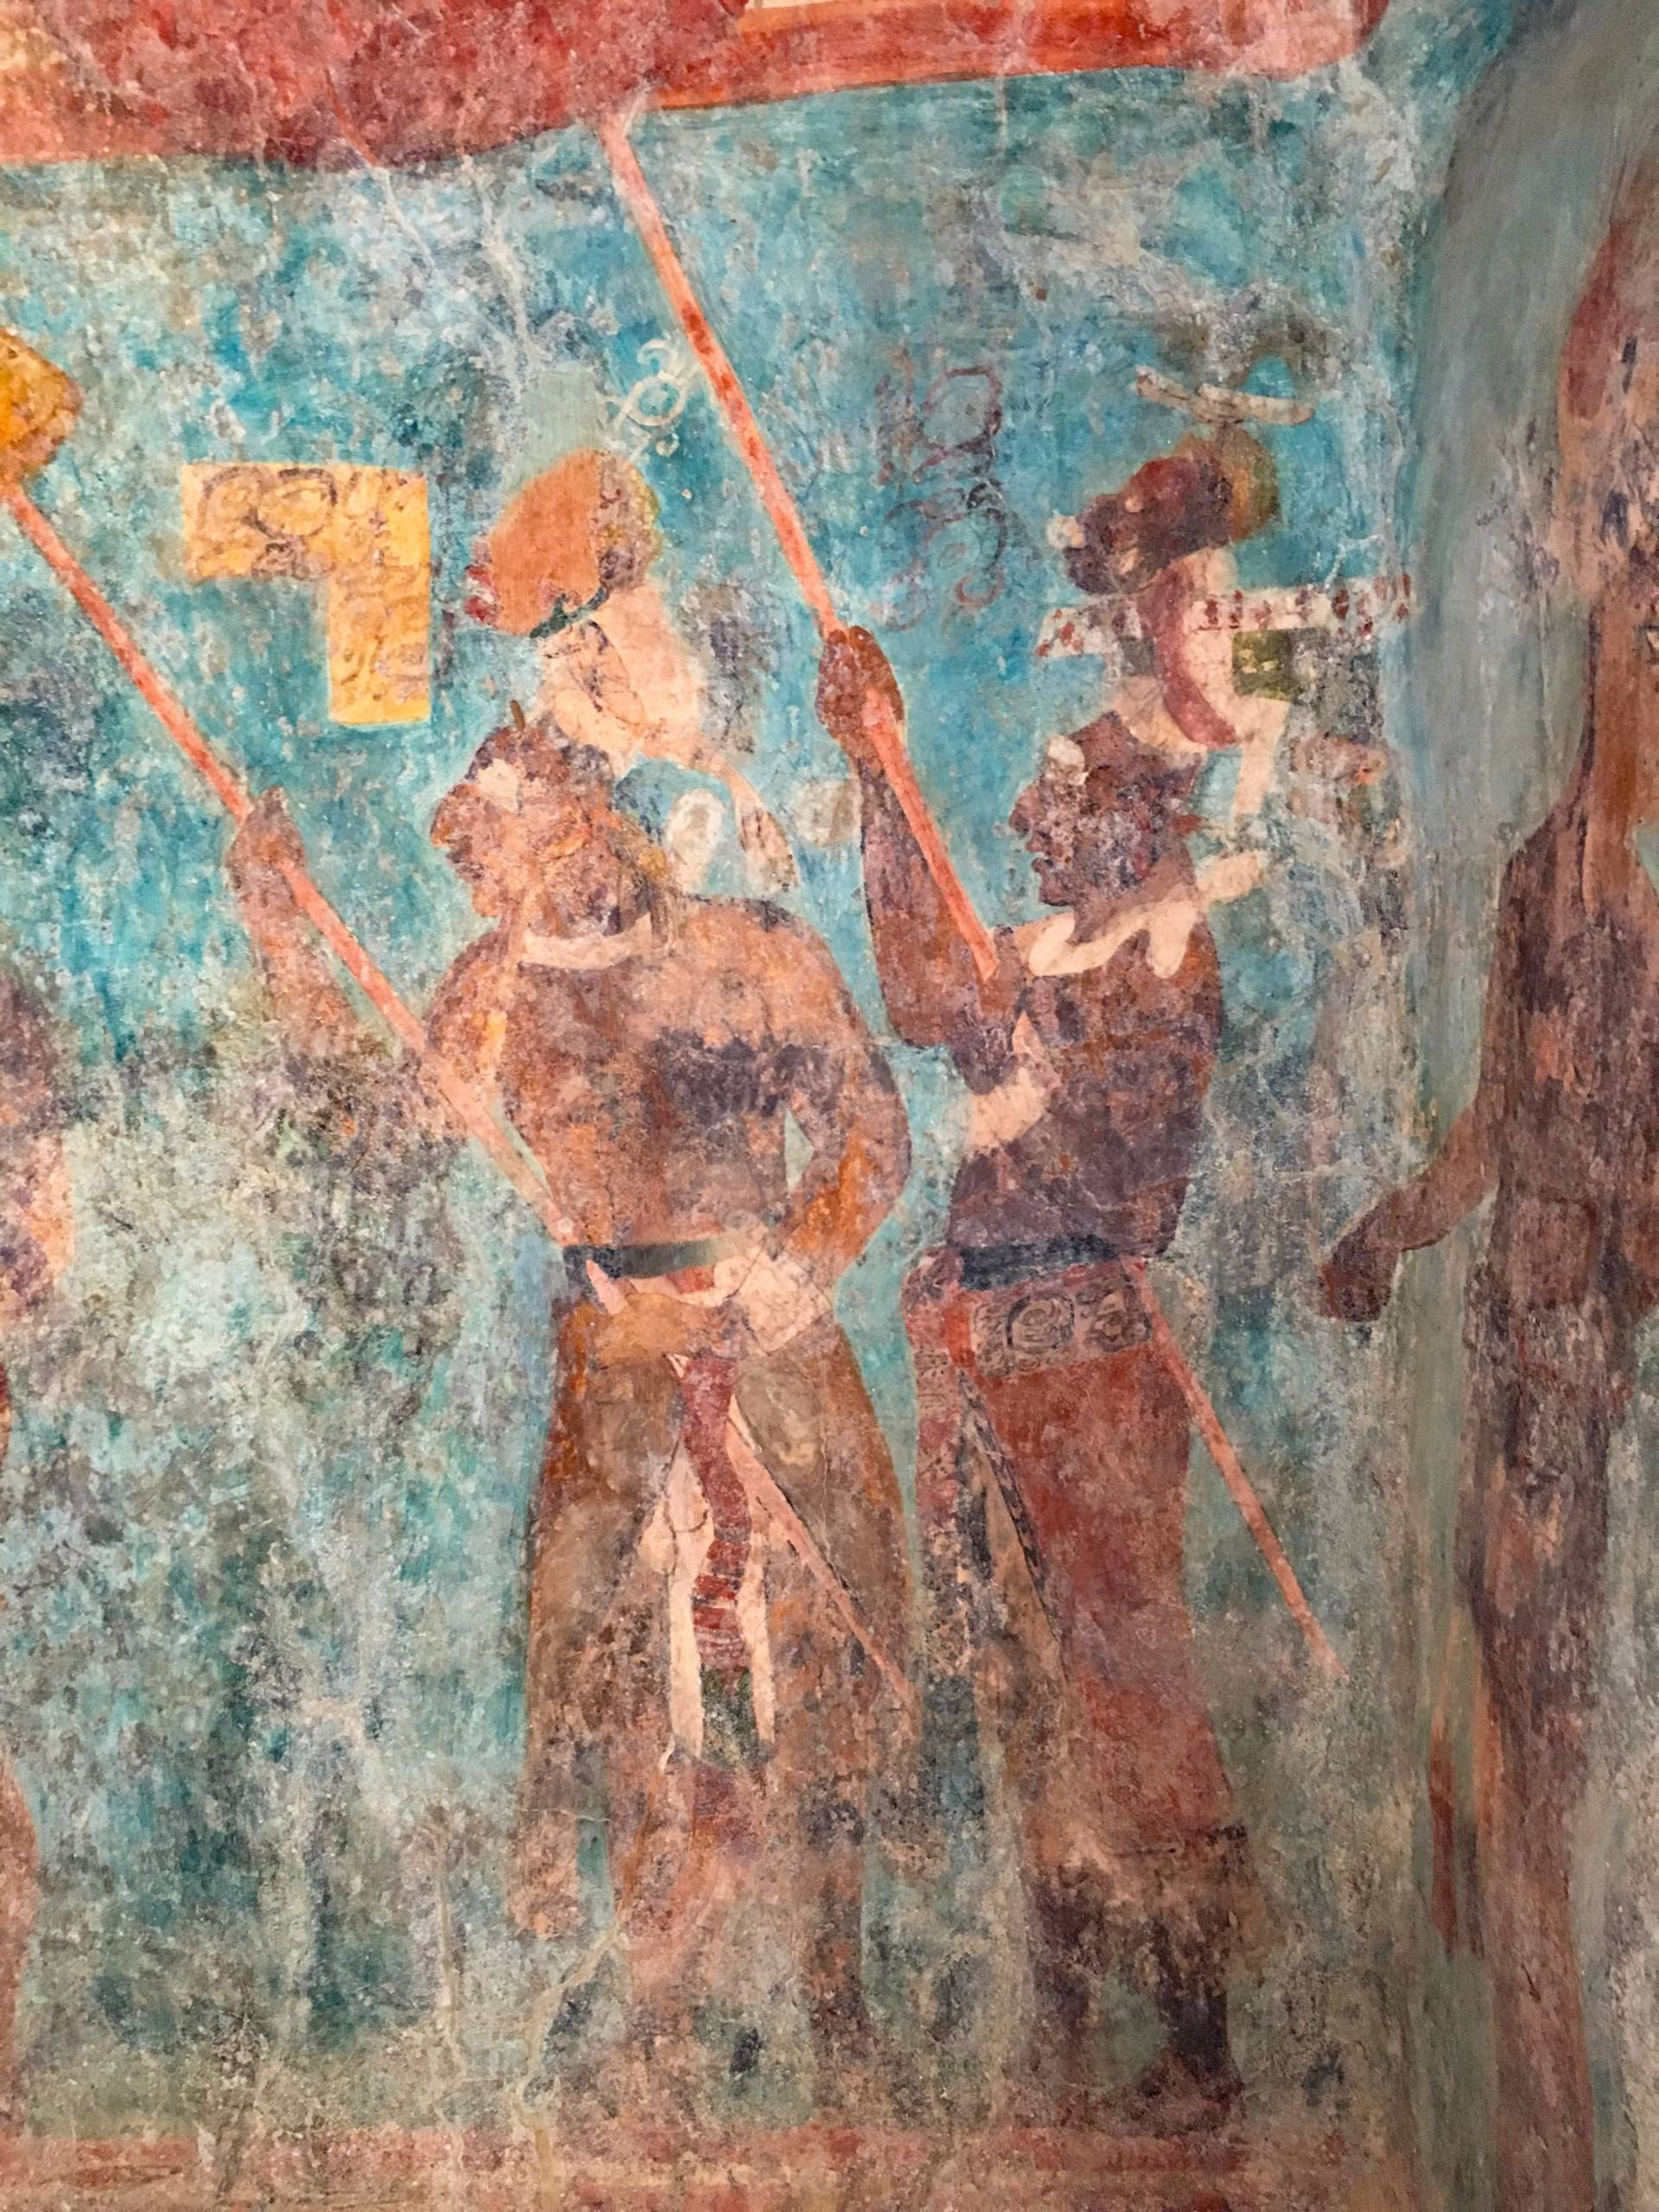 Detail of mural at Bonampak